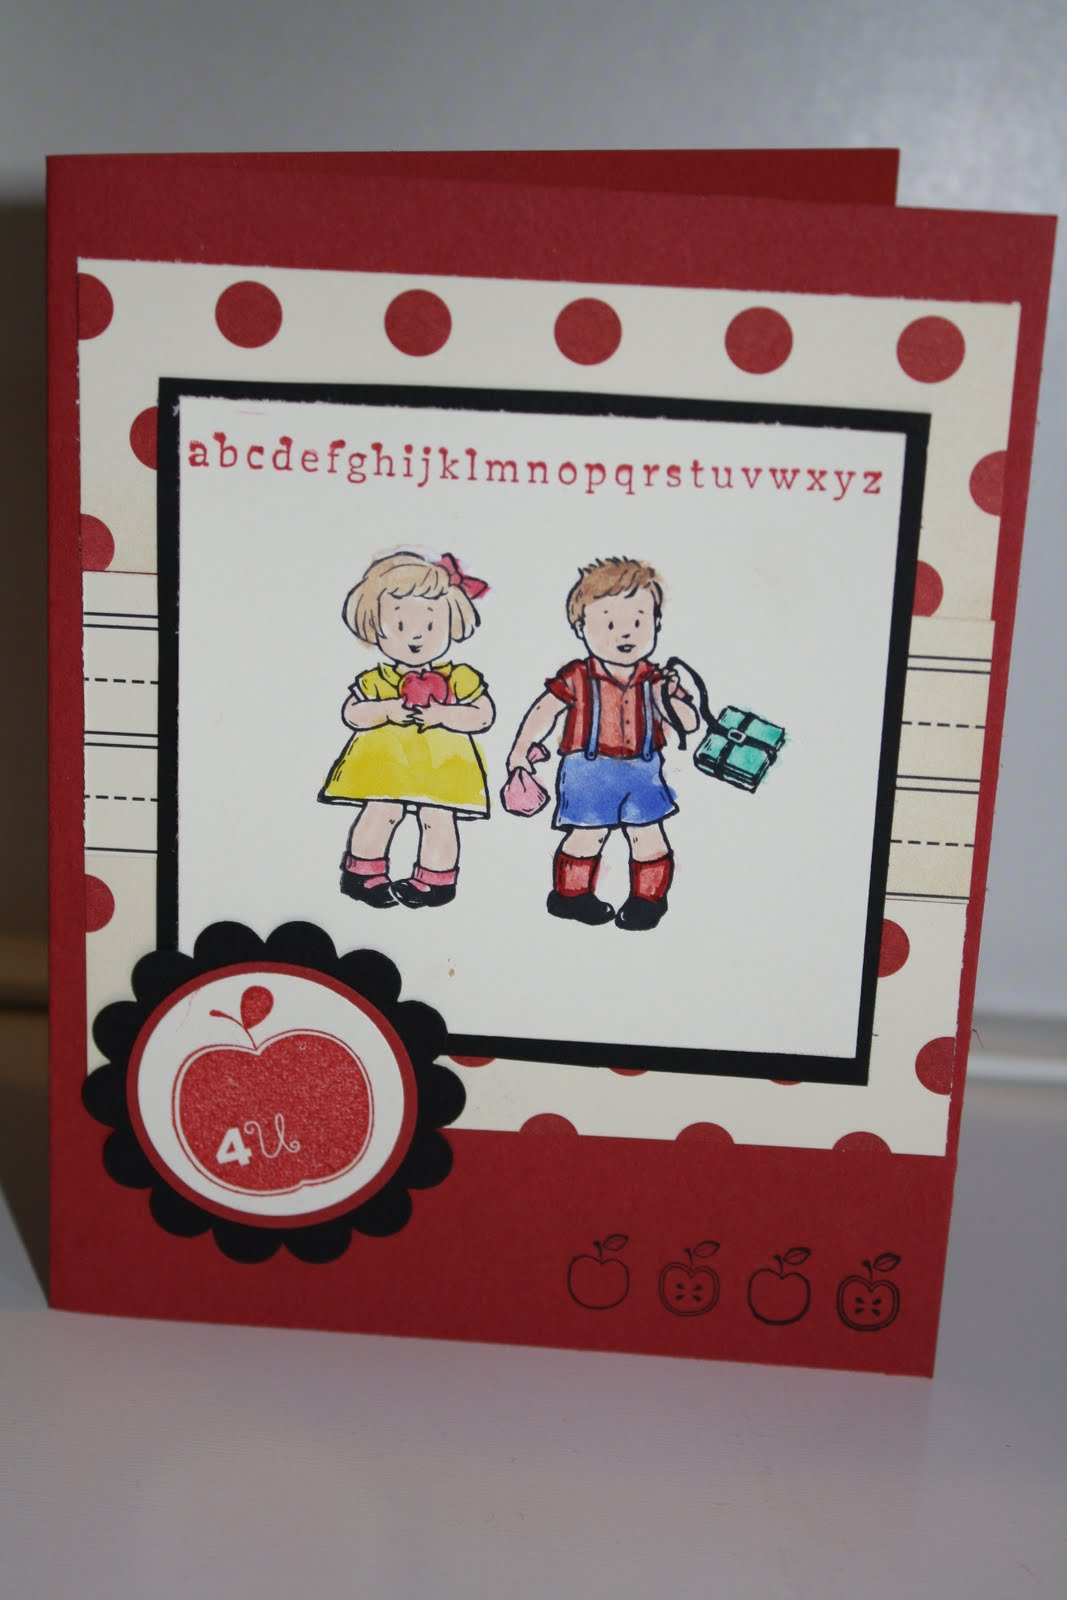 Stampin along with deb greeting card kids and first day of school i used up some scraps from the love letter dsp 117162 in making this card greeting card kids first day of school and apple blossoms are the stamp sets i m4hsunfo